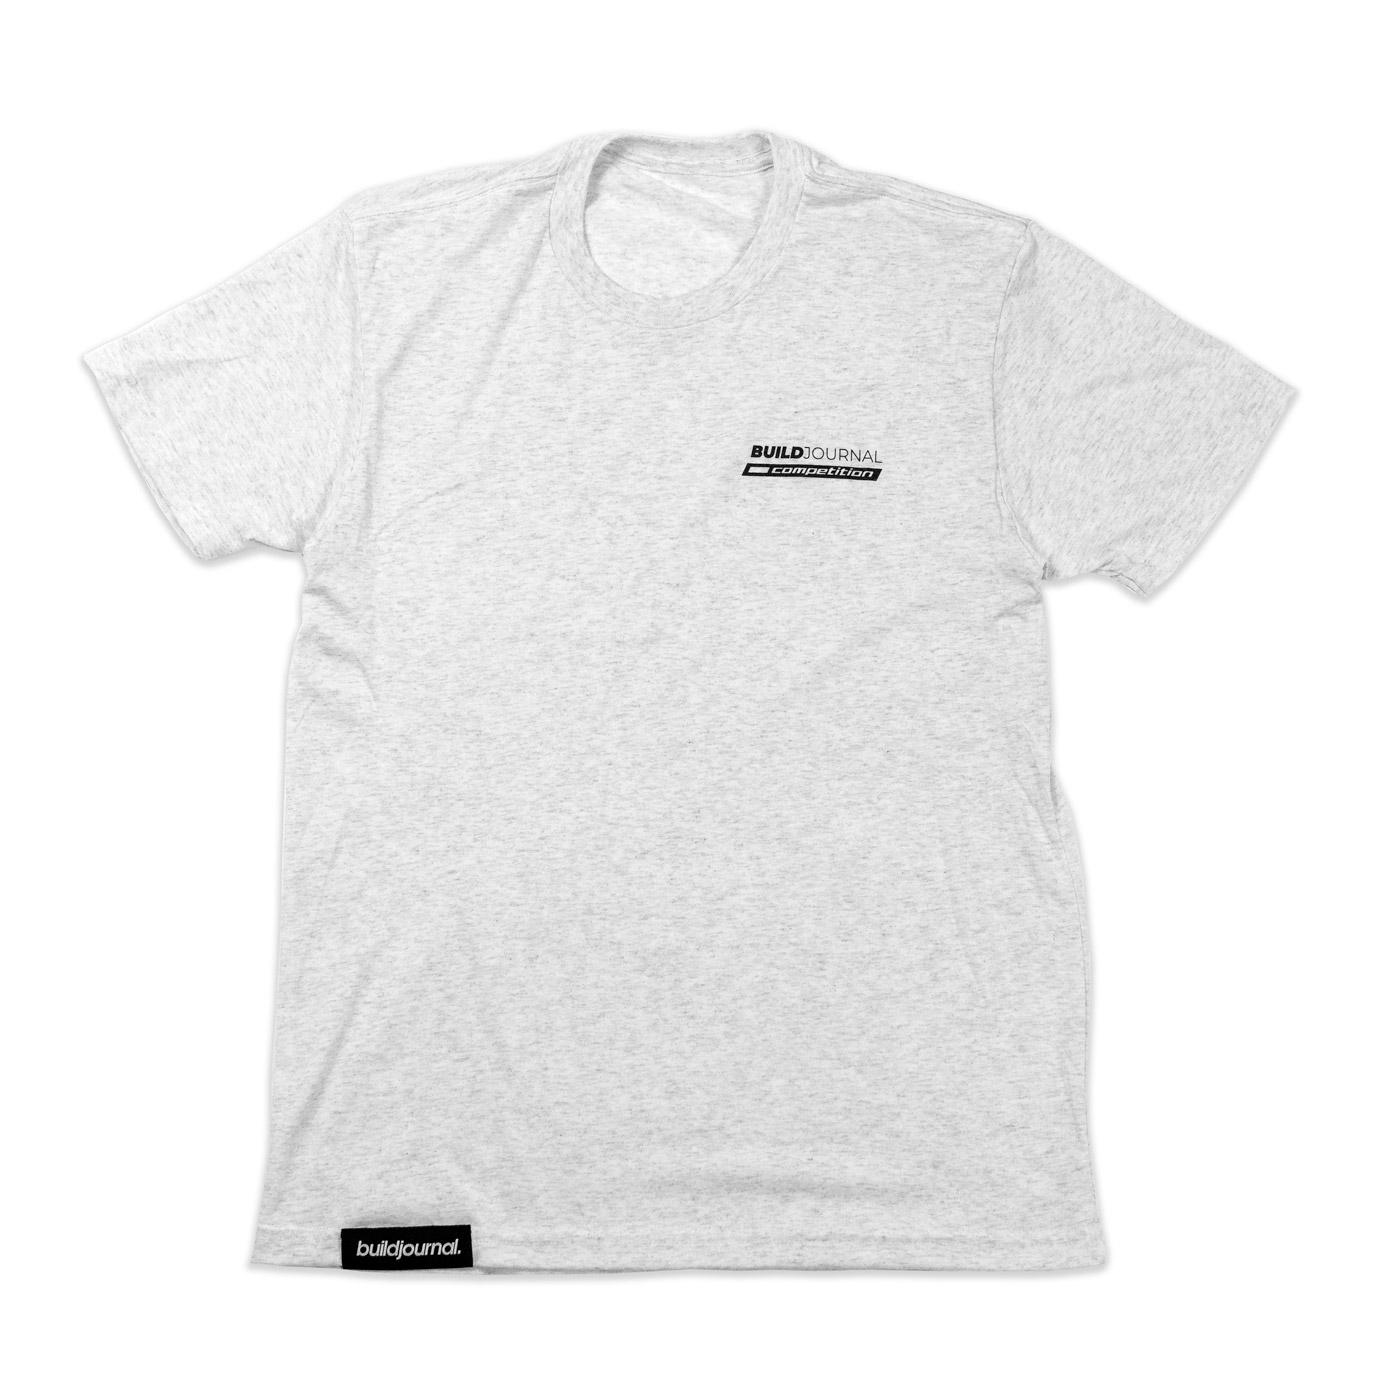 Buildjournal Competition Shirt